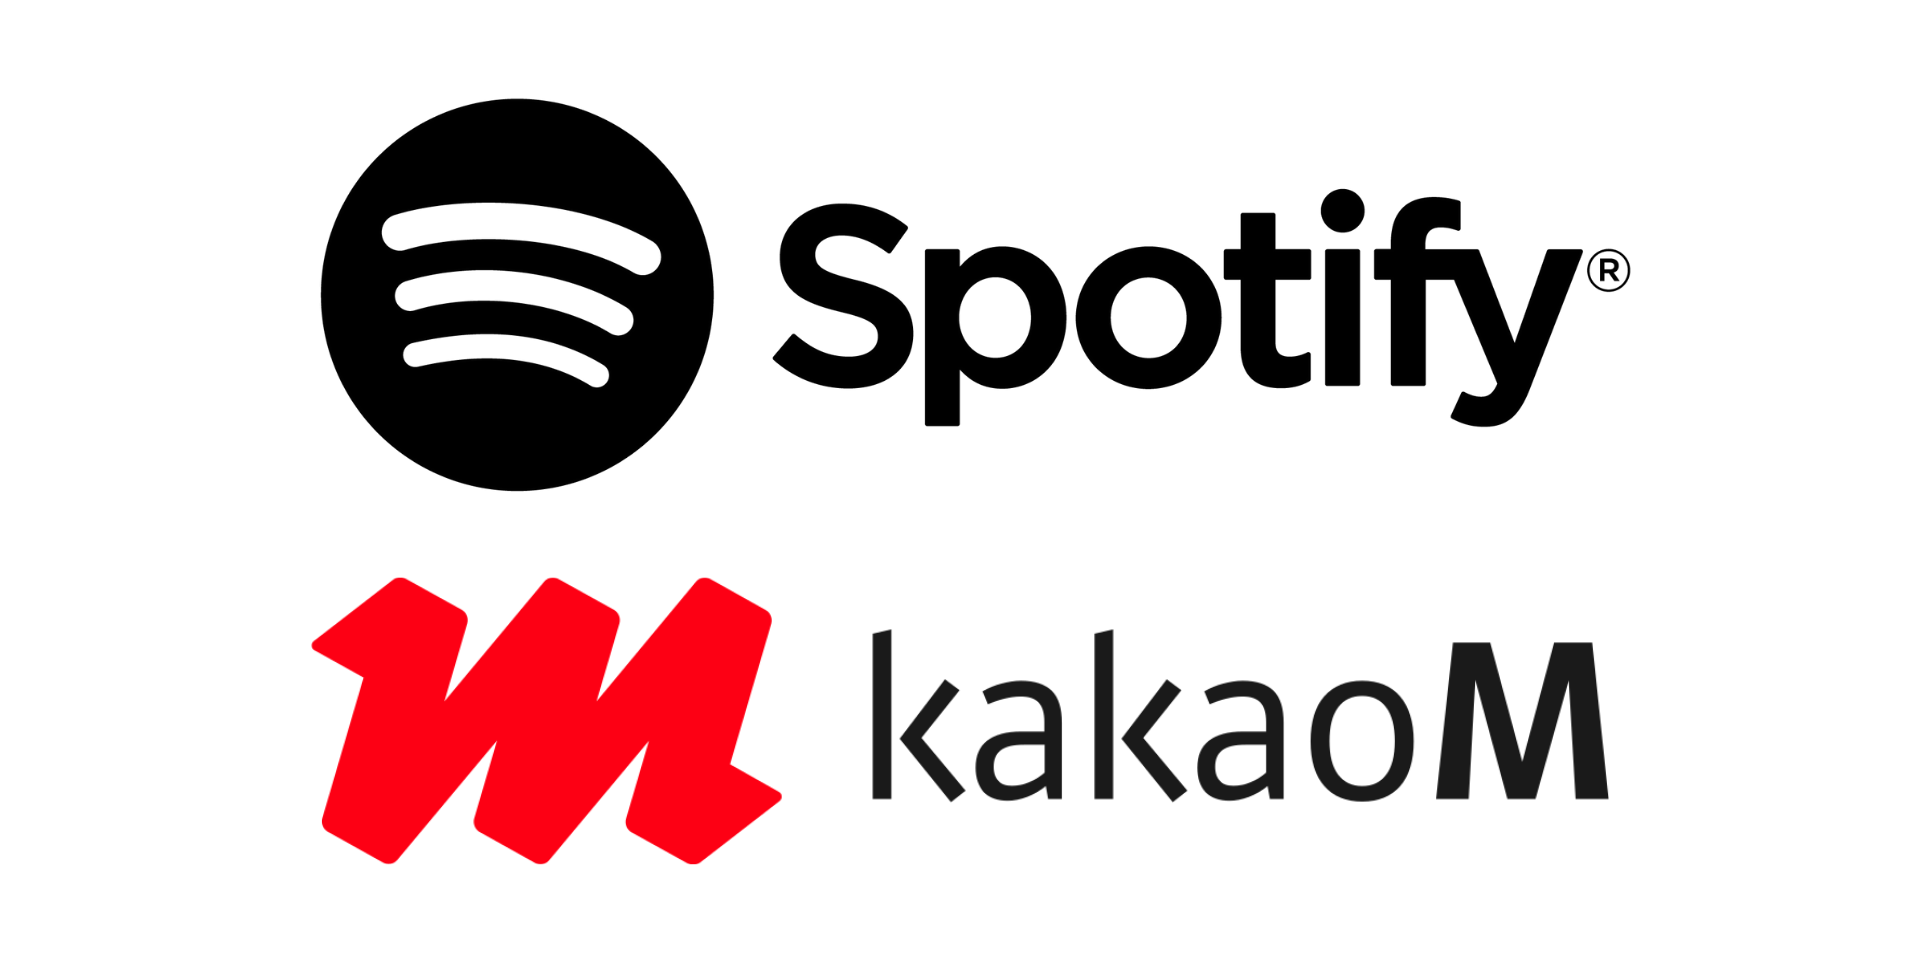 K-pop songs under Kakao M are no longer available on Spotify